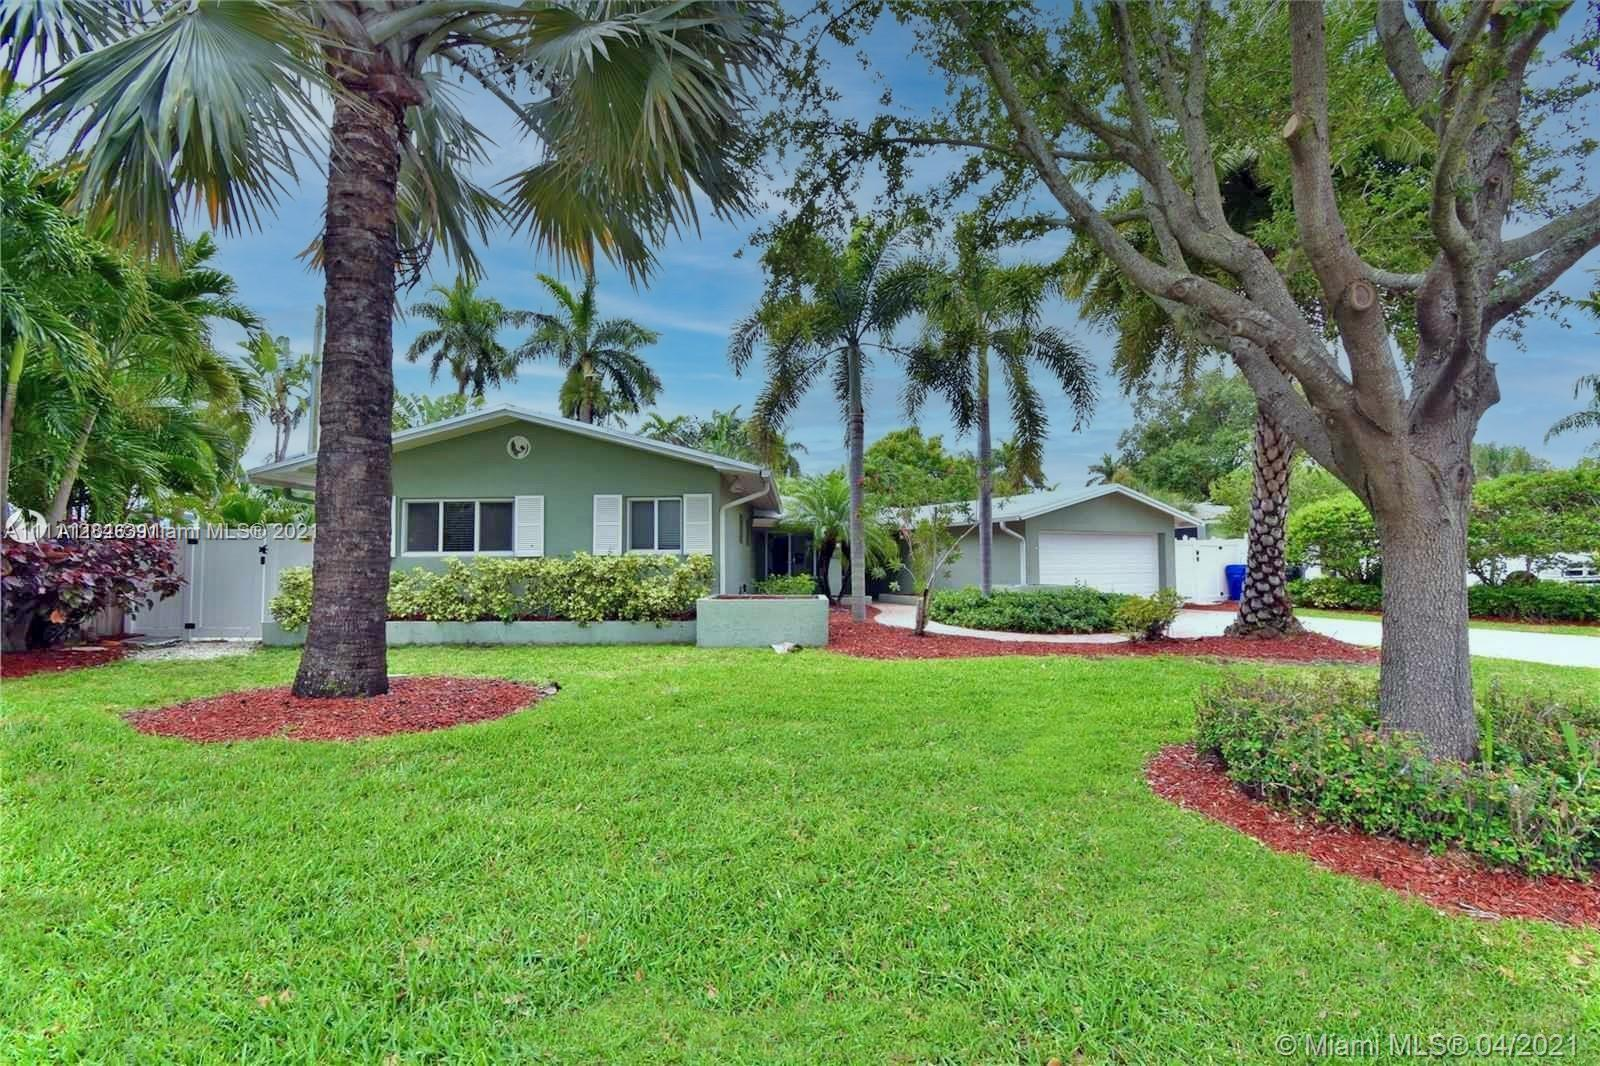 South Florida living with everything you need in this wonderfully updated. New washer dryer, New A/C